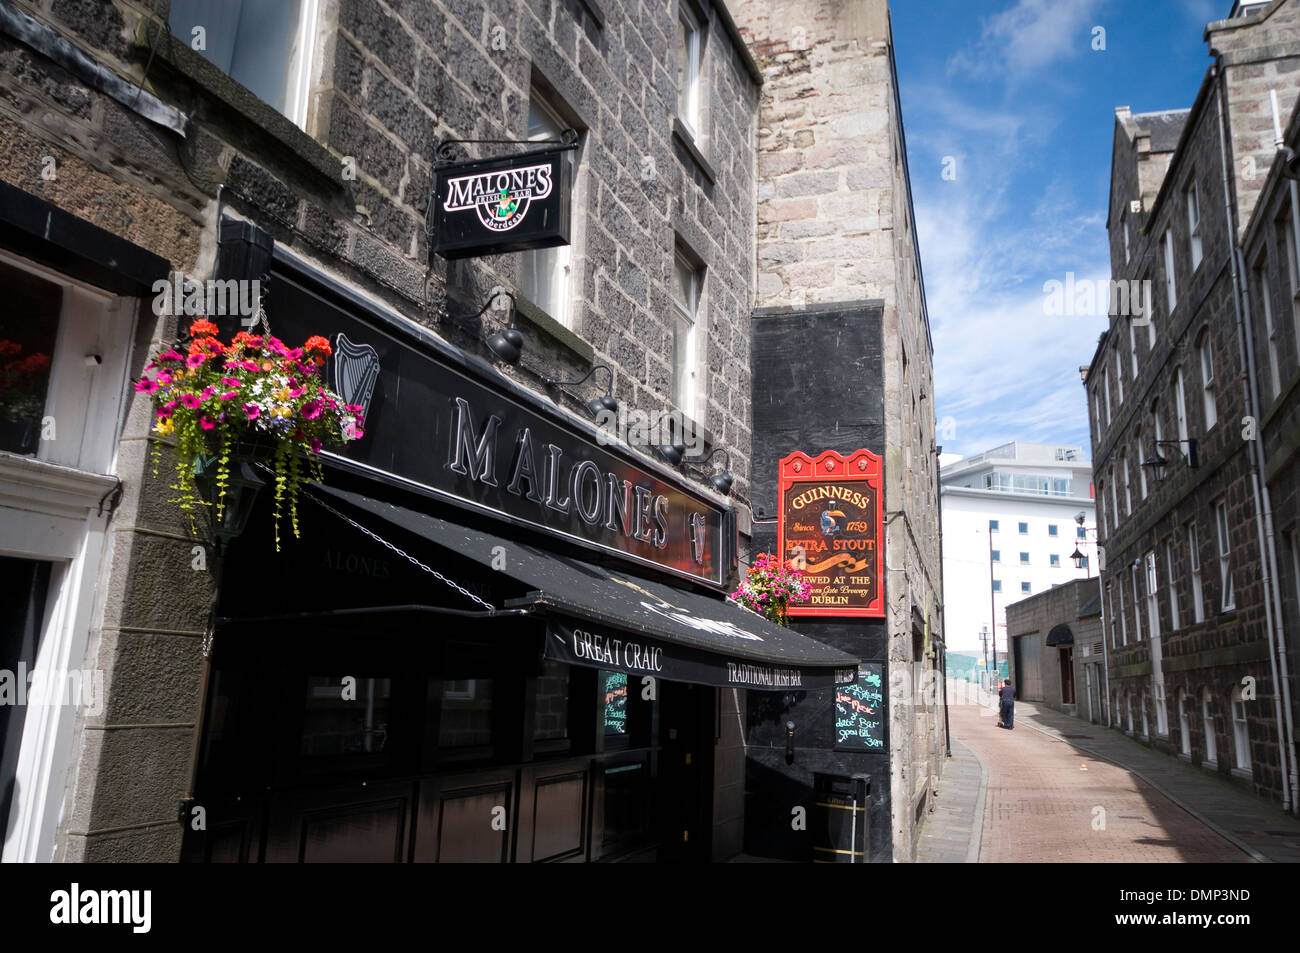 oil industry scotland north east malones pub - Stock Image